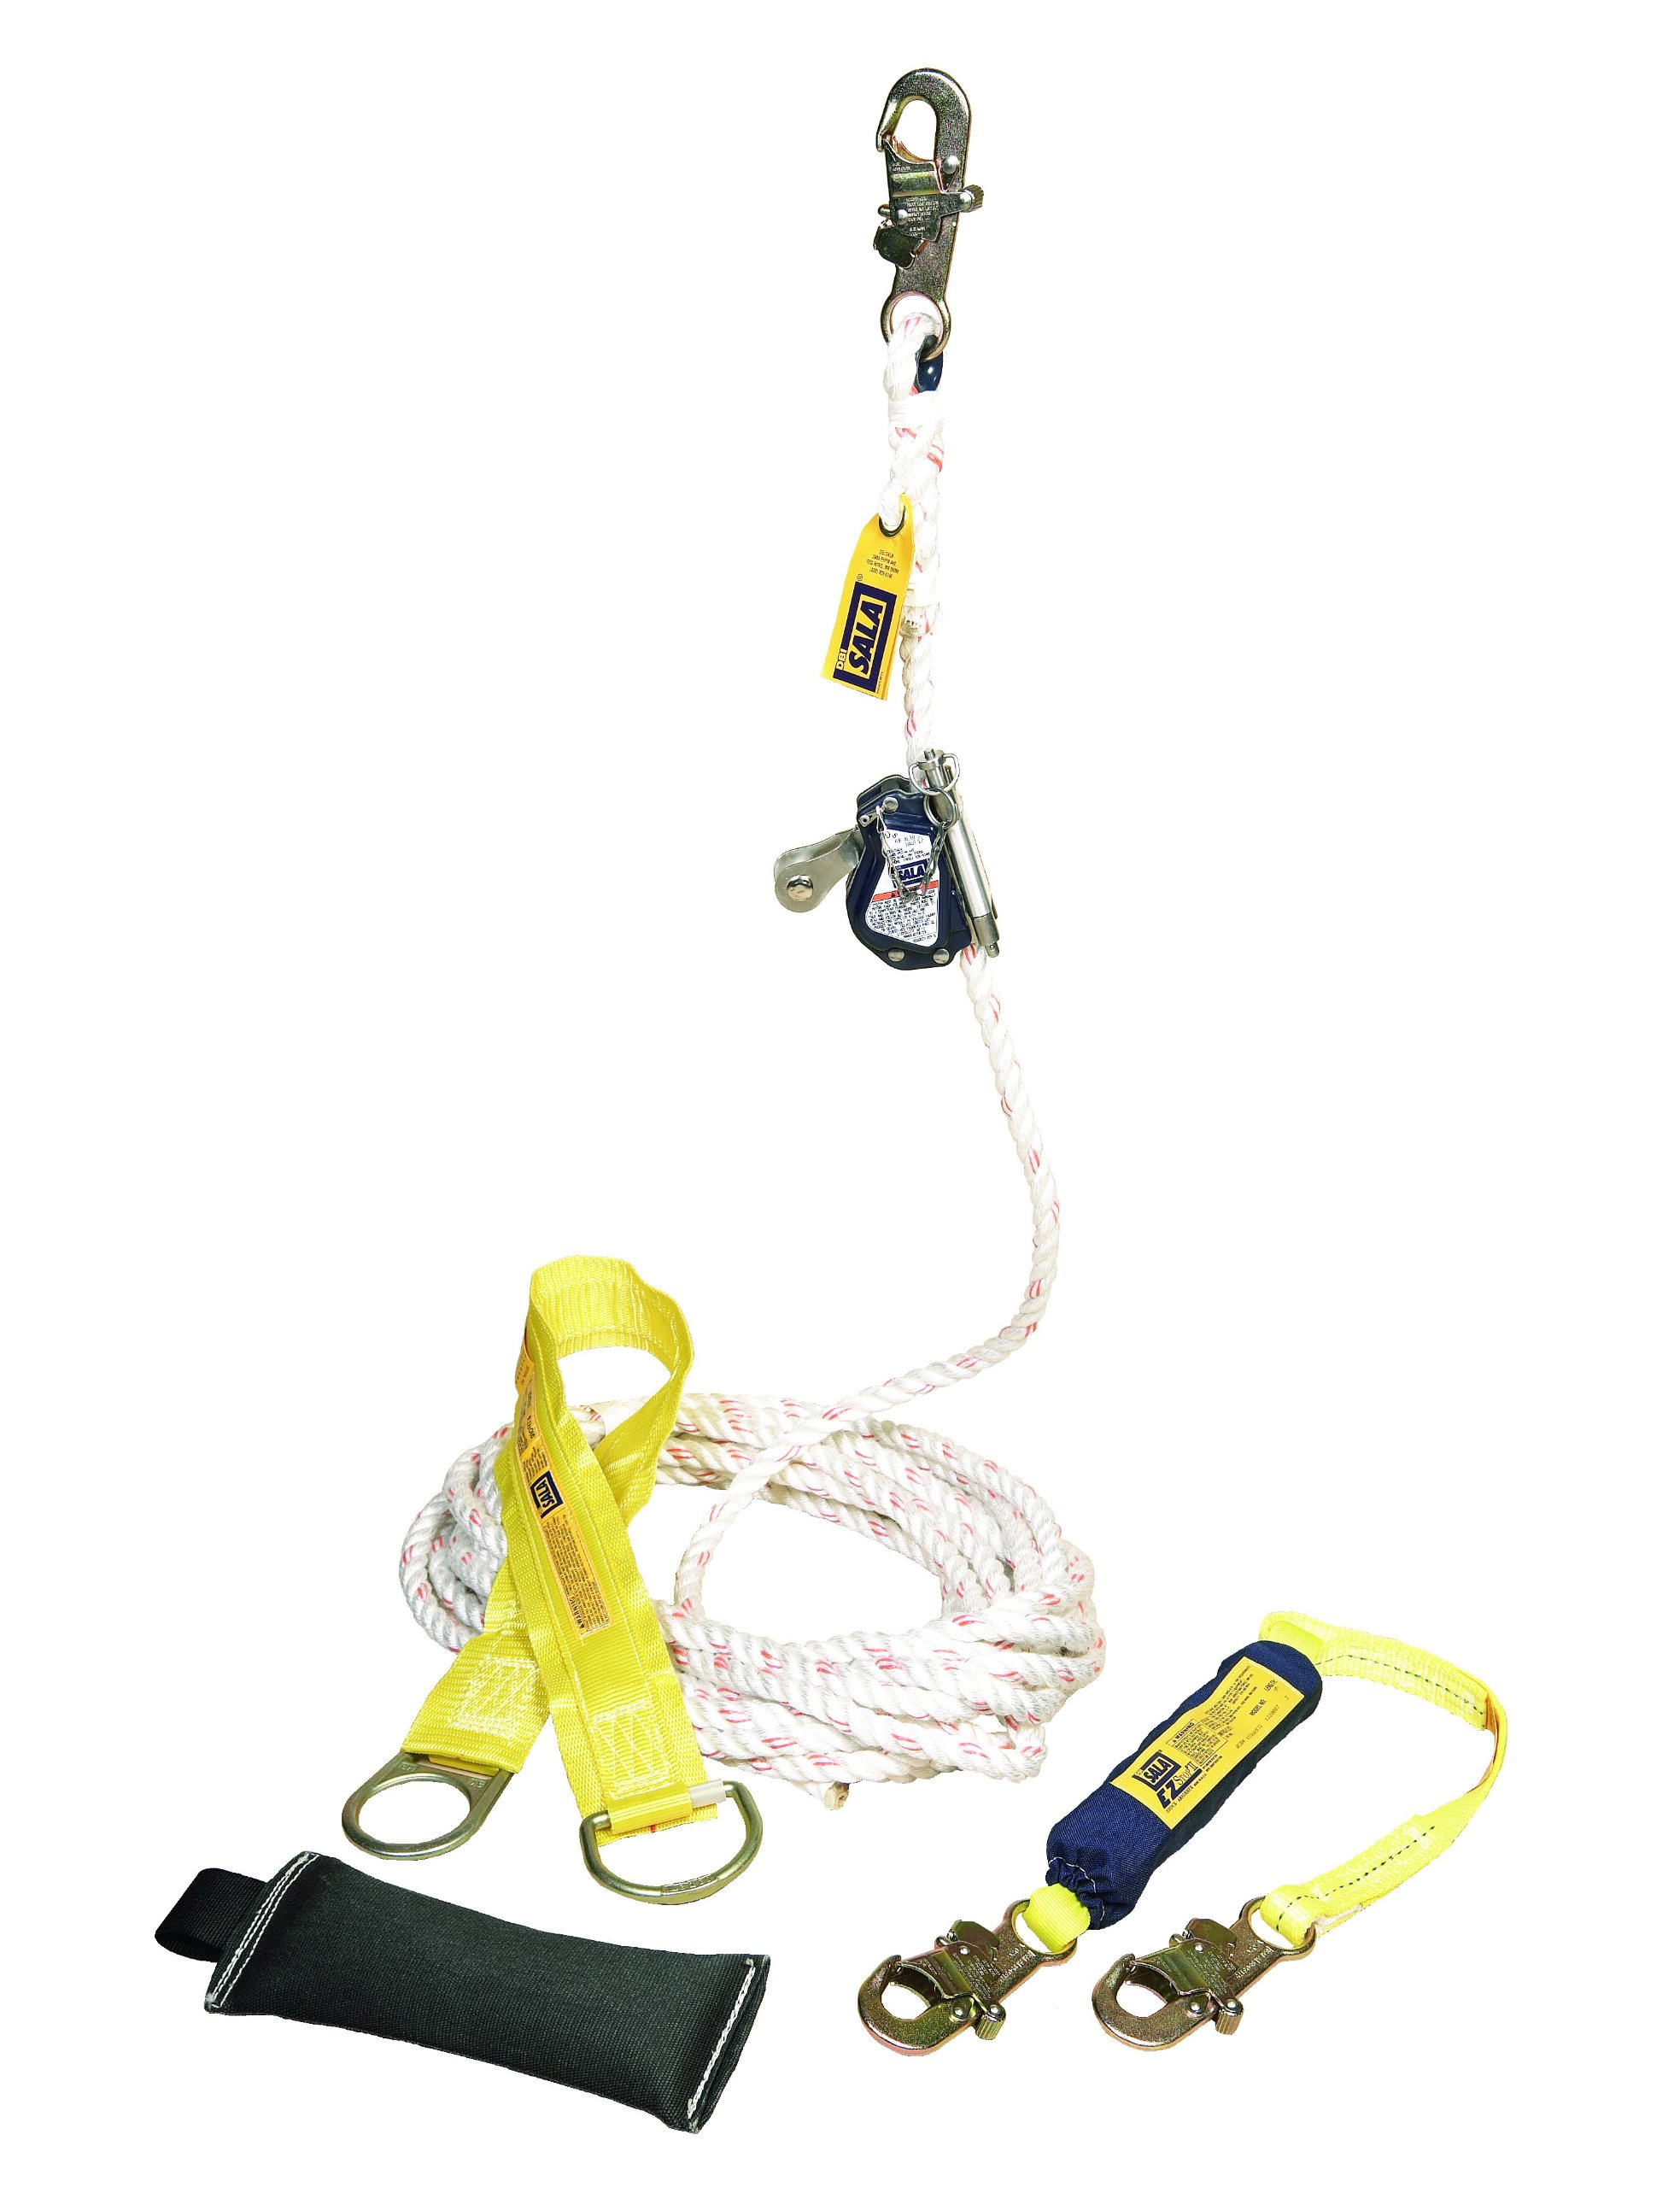 3M DBI-SALA Lad-Saf 5000400 Mobile Rope Grab Kit, Rope Grab, 3' Shock Absorbing Lanyard, 50' Rope Lifeline, Counterweight, Tie-Off Adaptor, and Carrying Bag by 3M Fall Protection Business (Image #1)